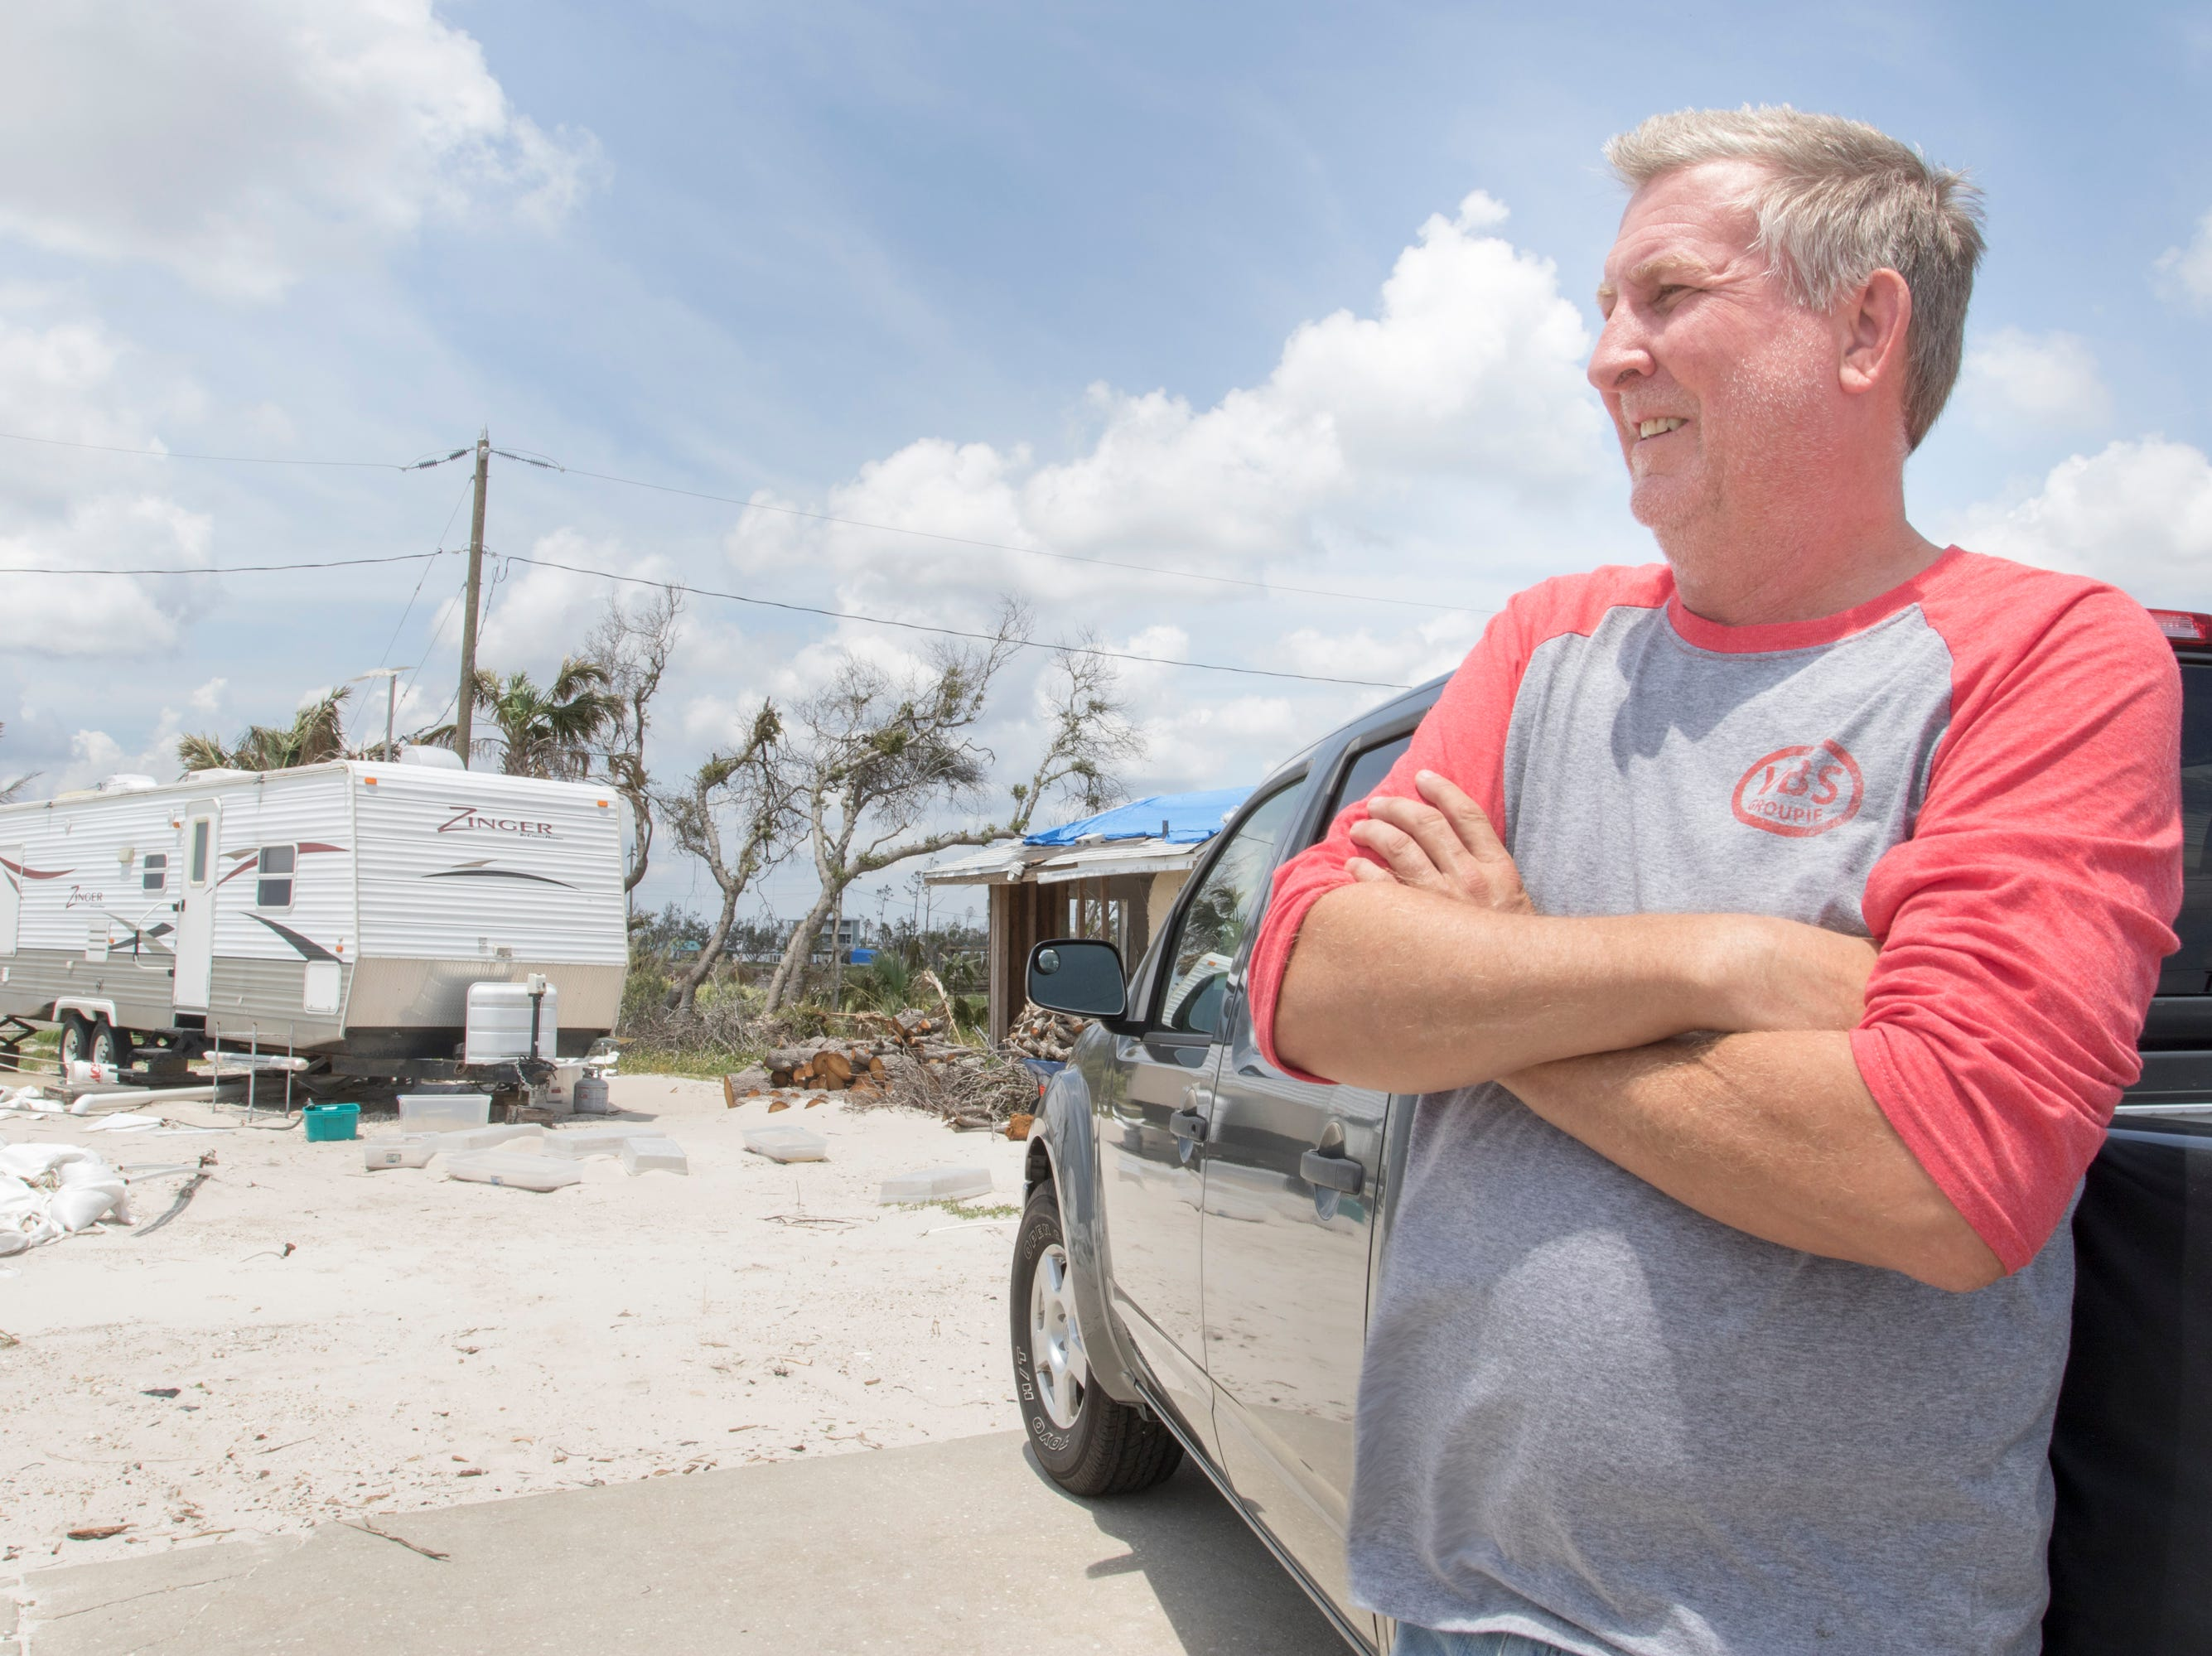 David Gieseking, pastor of Living Water Church at the Beach, looks out along Mexico Beach where his church once stood in the Panama City area of Florida on Wednesday, May 8, 2019.  Gieseking also lost his house and is now living in the RV on next to the foundation of his church.